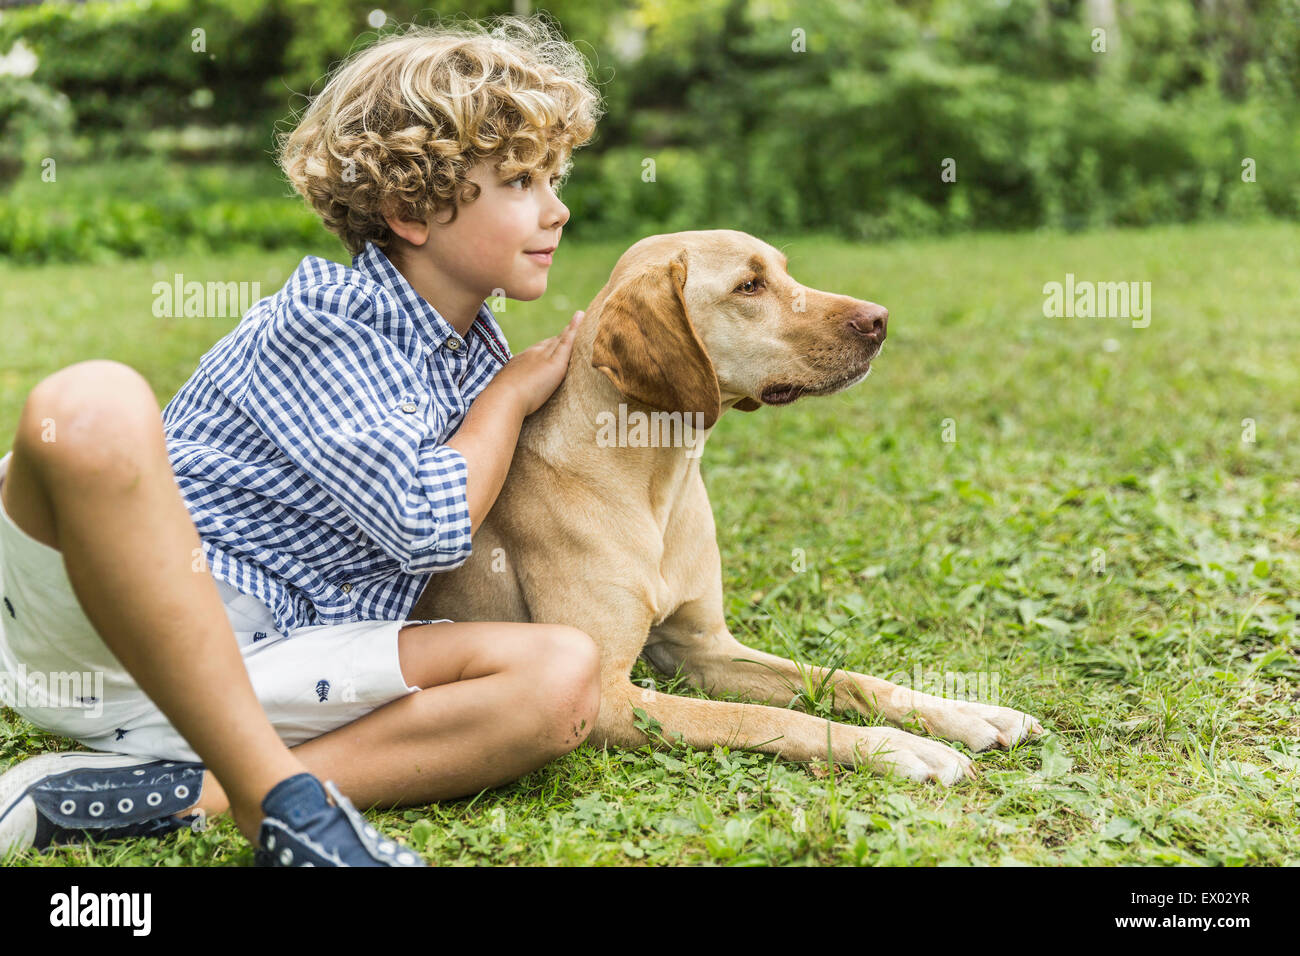 Portrait of boy sitting petting dog in garden - Stock Image